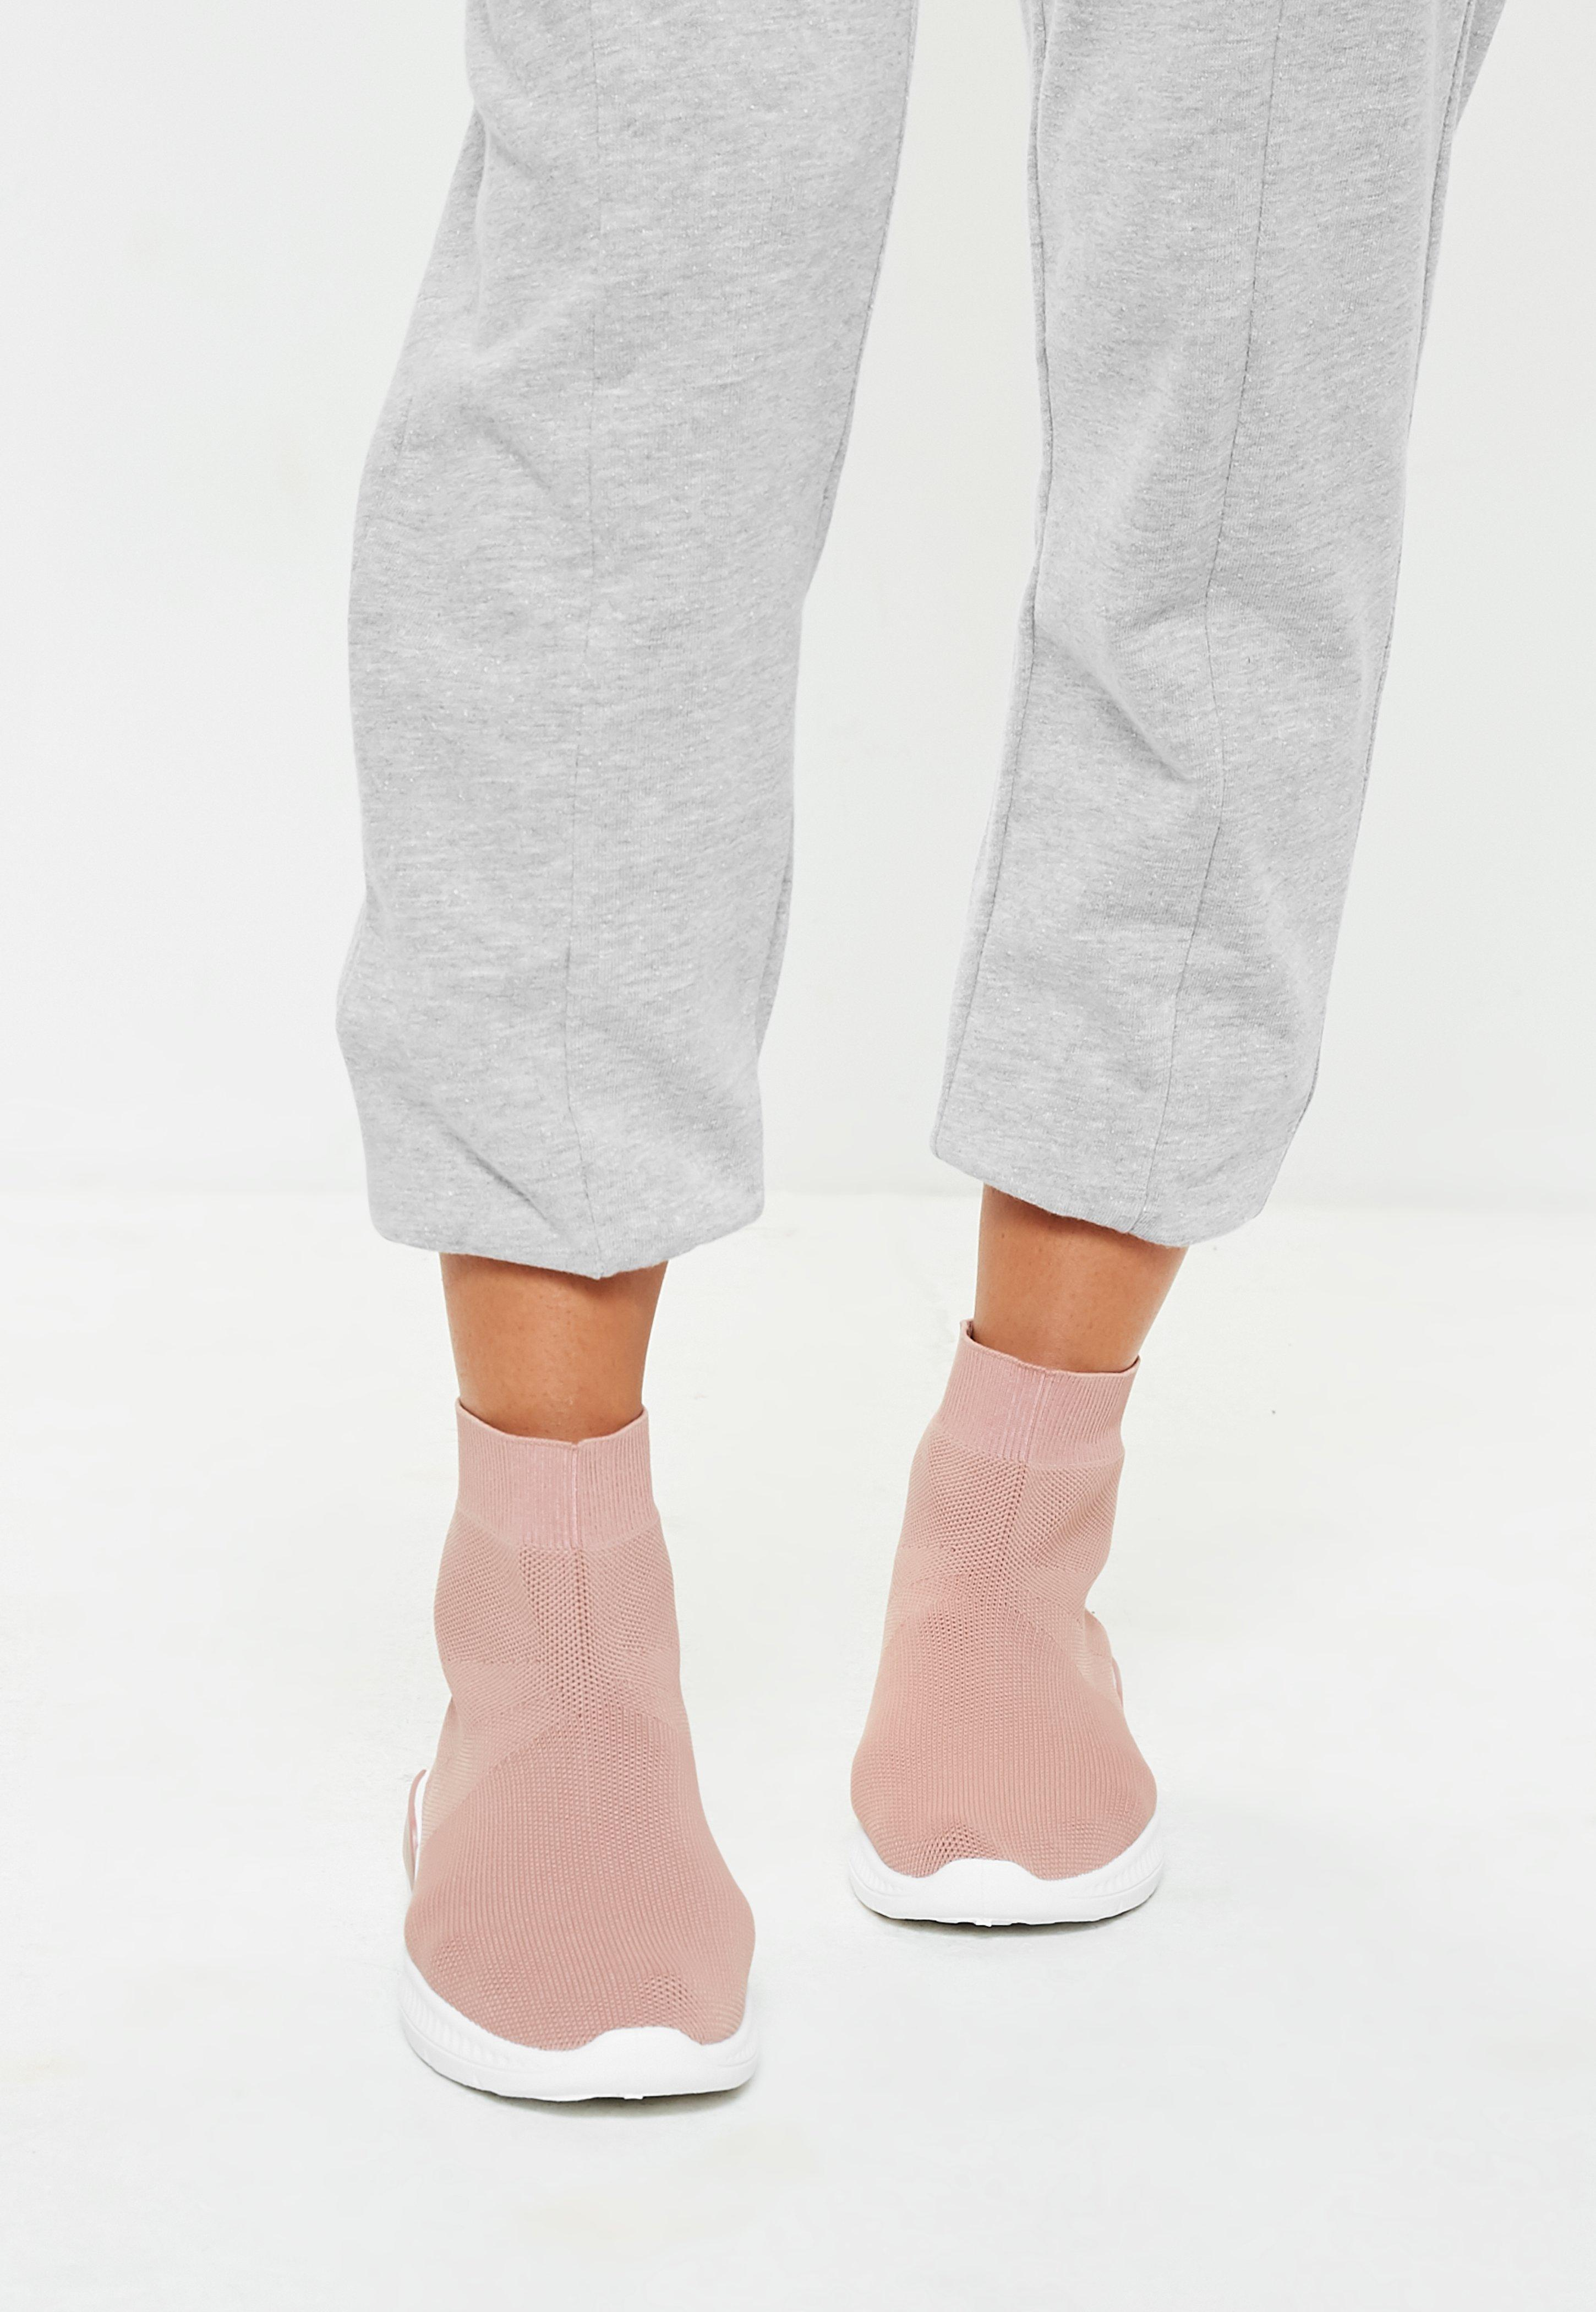 Missguided Pink Sock Sneakers - Lyst